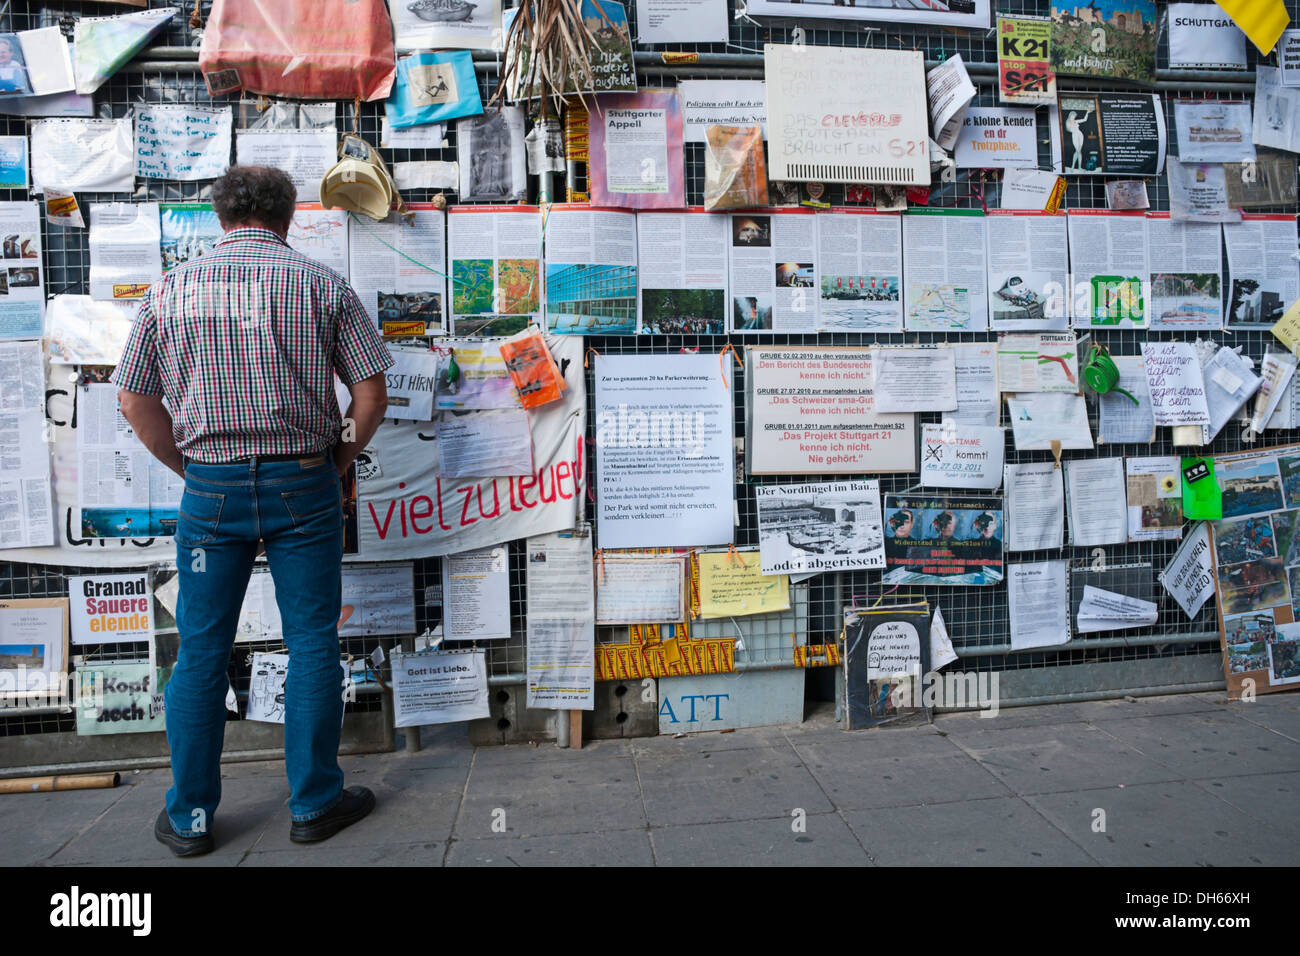 Stuttgart 21 building project, passerby and protest posters on the fence of the demolished north wing of Stuttgart station - Stock Image